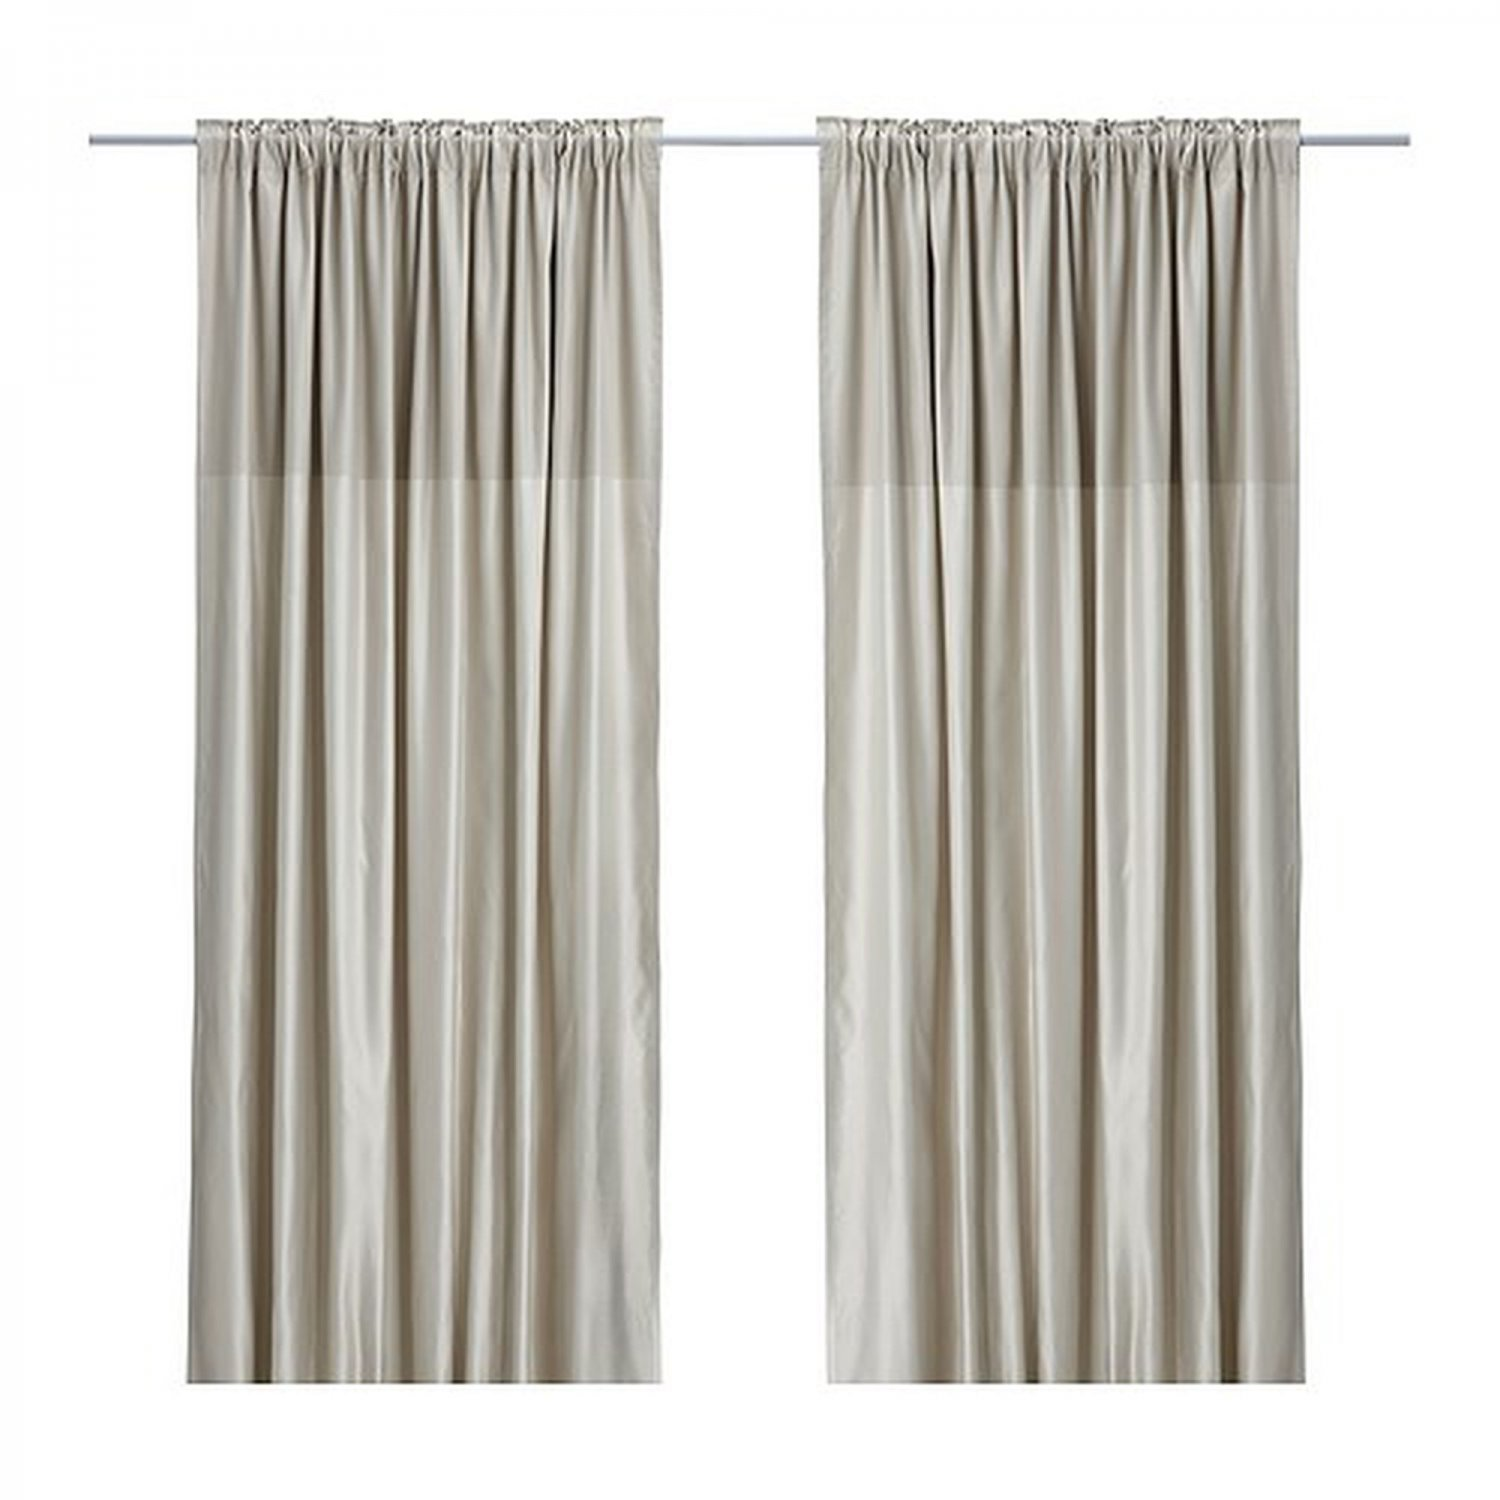 ikea dagny curtains drapes beige two tone satin classic 98. Black Bedroom Furniture Sets. Home Design Ideas